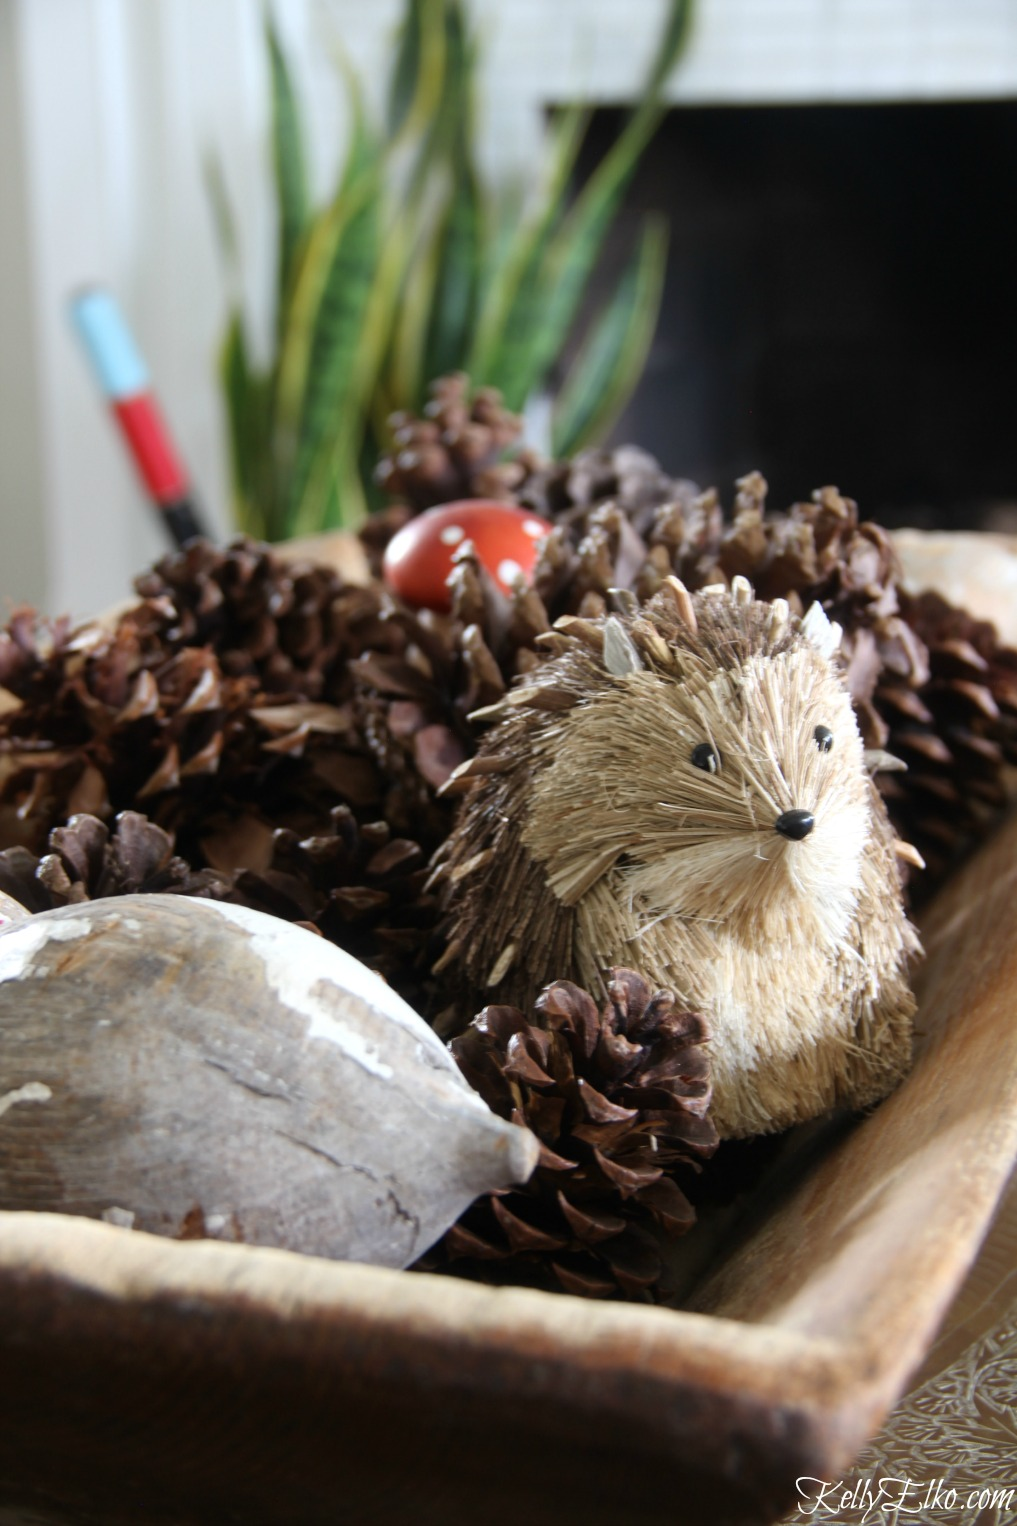 Dough bowl pine cone display - a little critter is a fun touch kellyelko.com